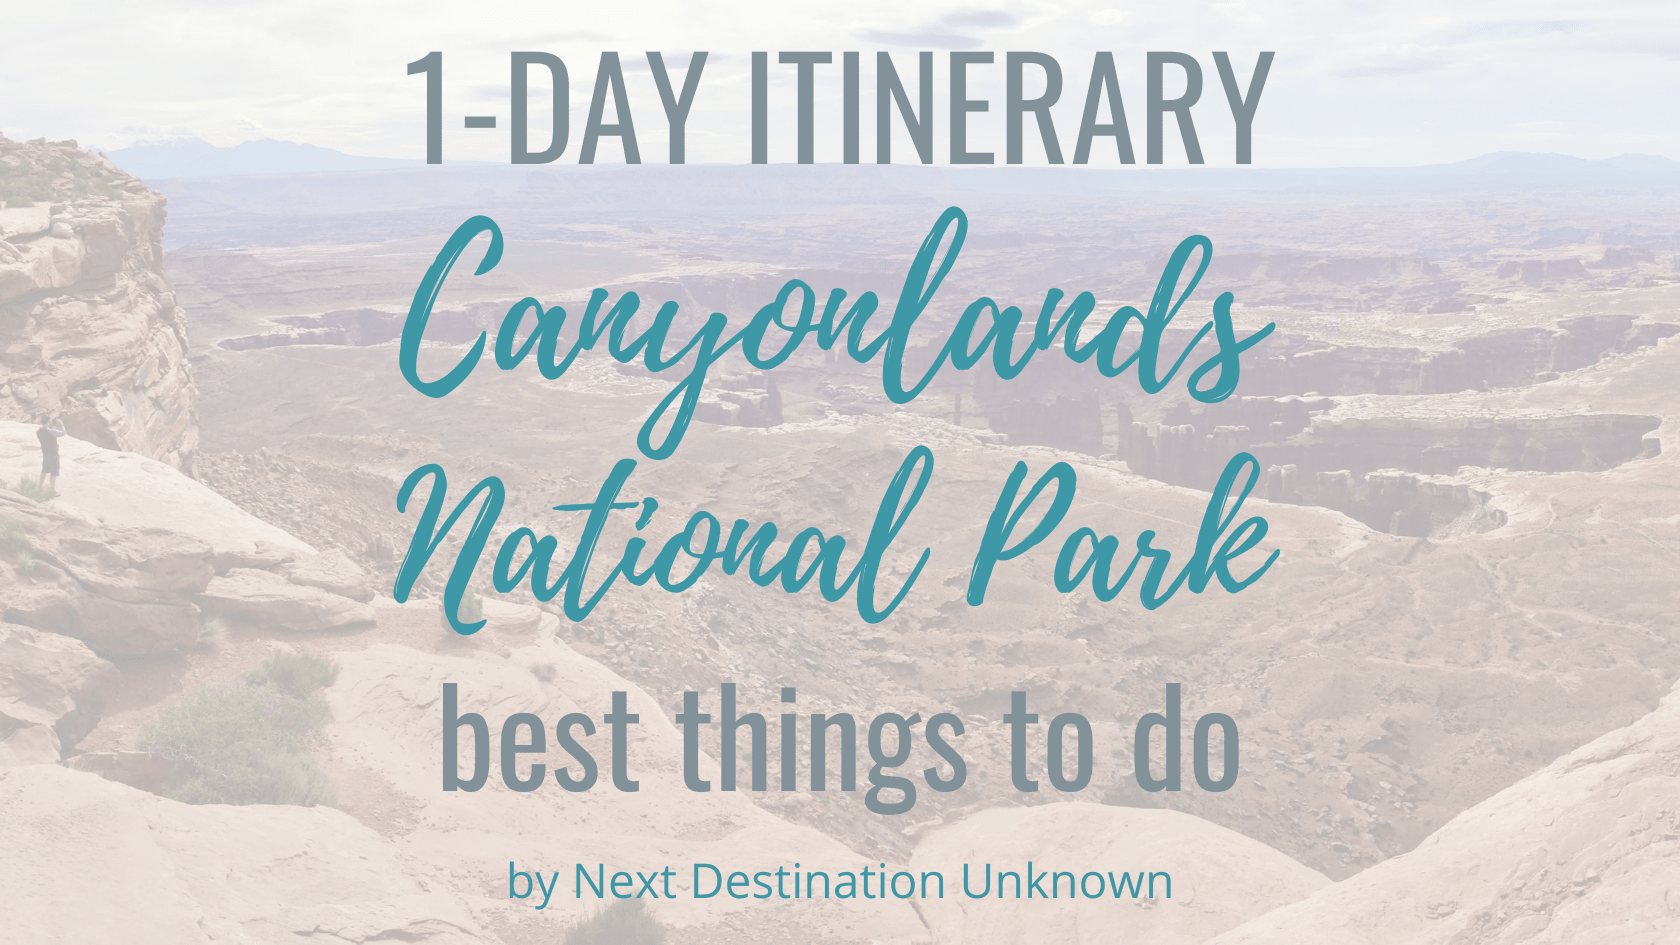 Canyonlands National Park in Utah - 1-Day Itinerary of the Best Things To Do